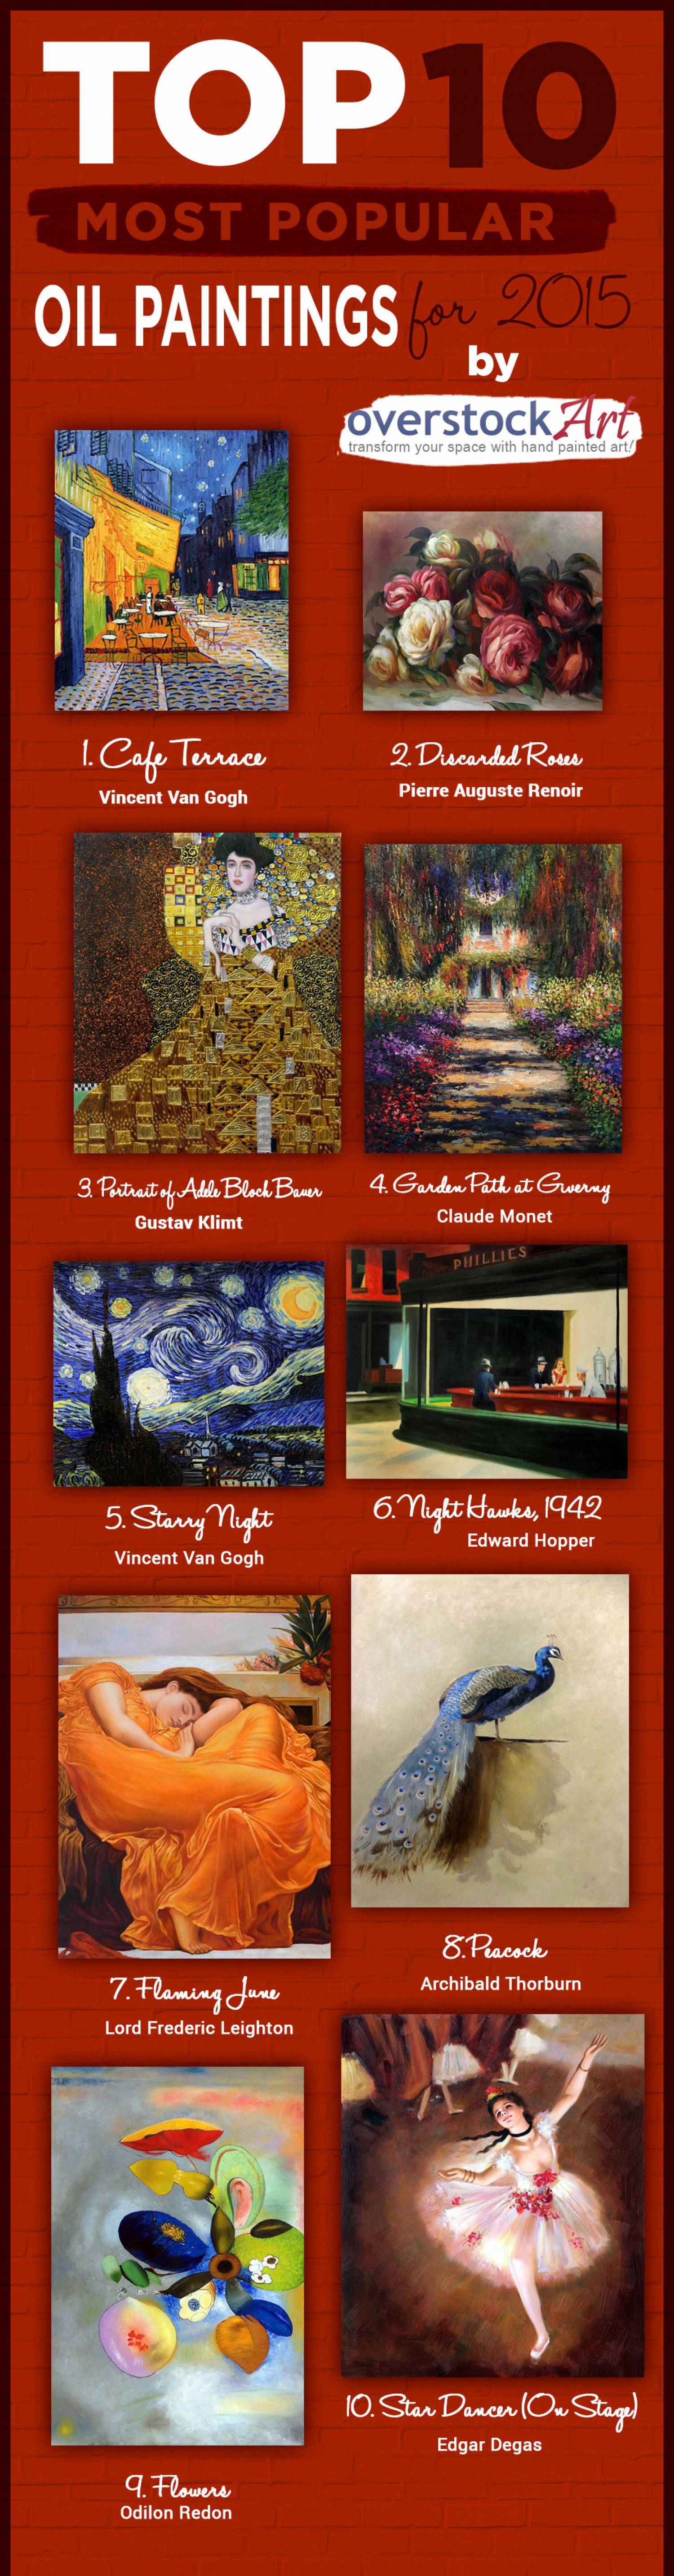 Top 10 Most Popular Oil Paintings for 2015  Infographic